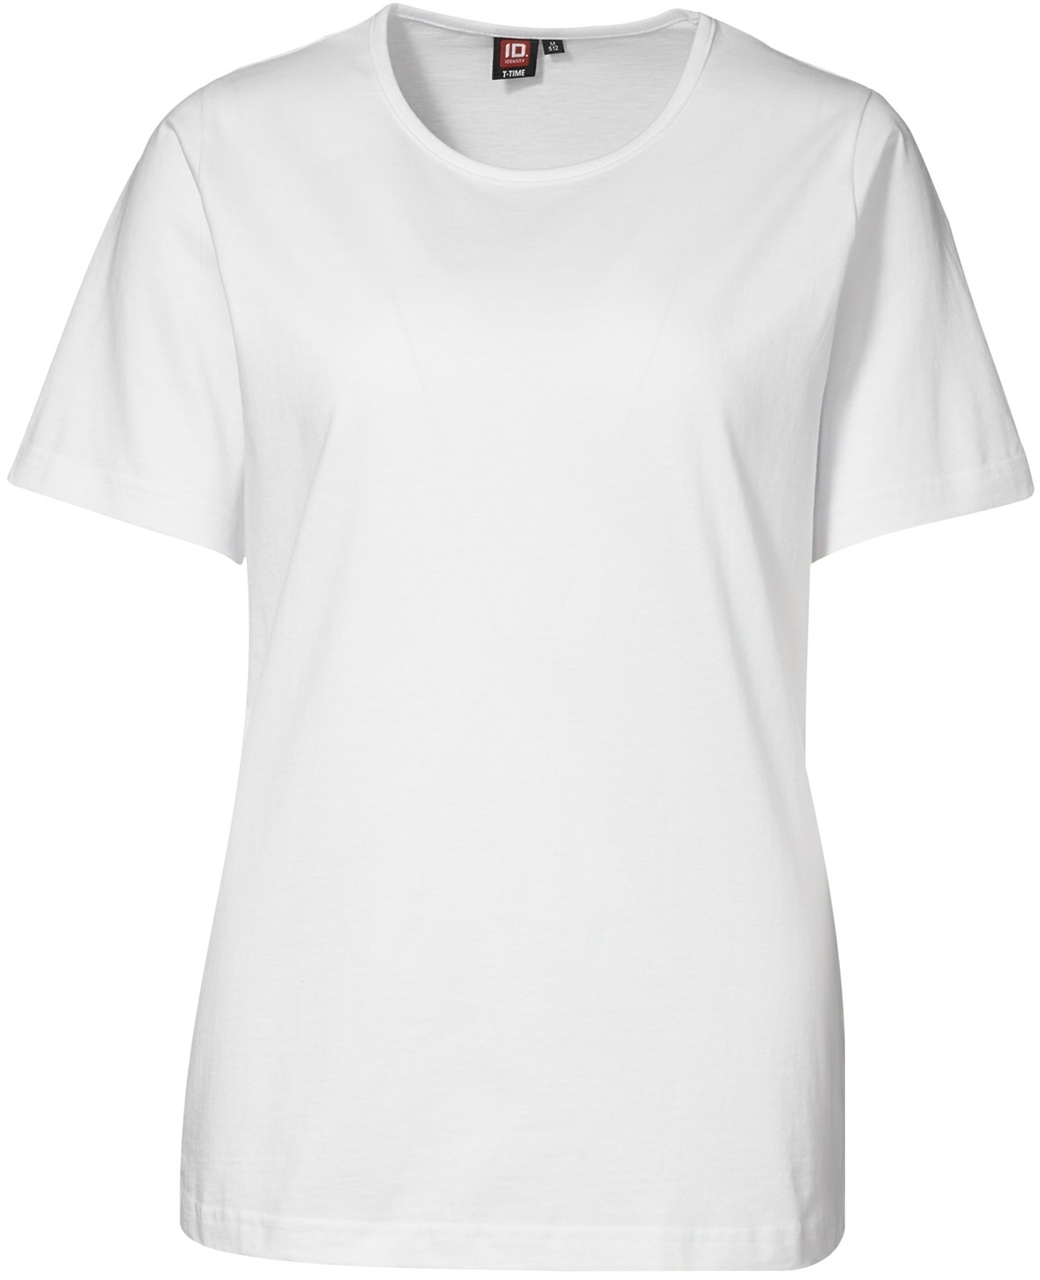 Picture of T-Time Γυναικείο t-shirt 0512 / White